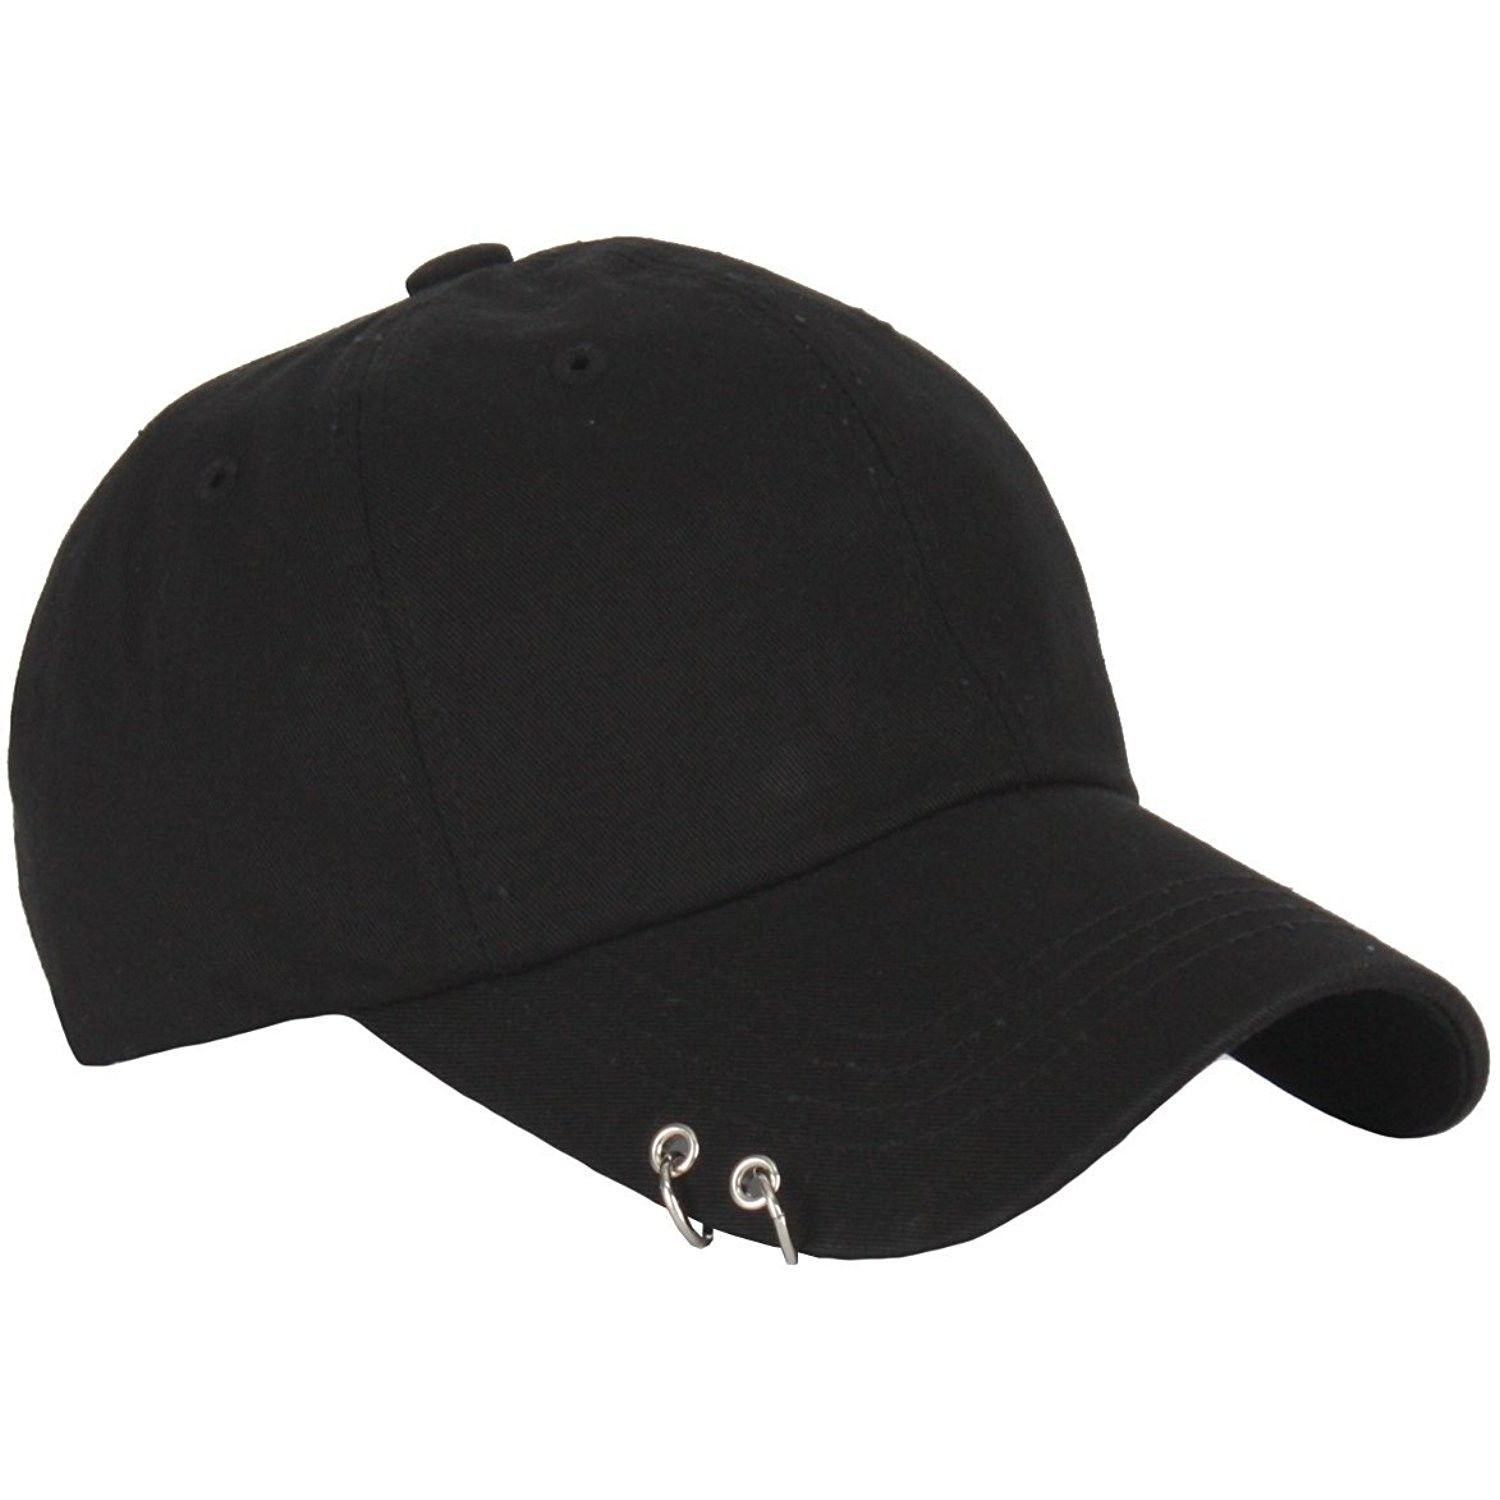 Men Women Ring Stud Baseball Cap Punk Piercing Design Curved Hat Adjustable  TCB1  9930afc04466